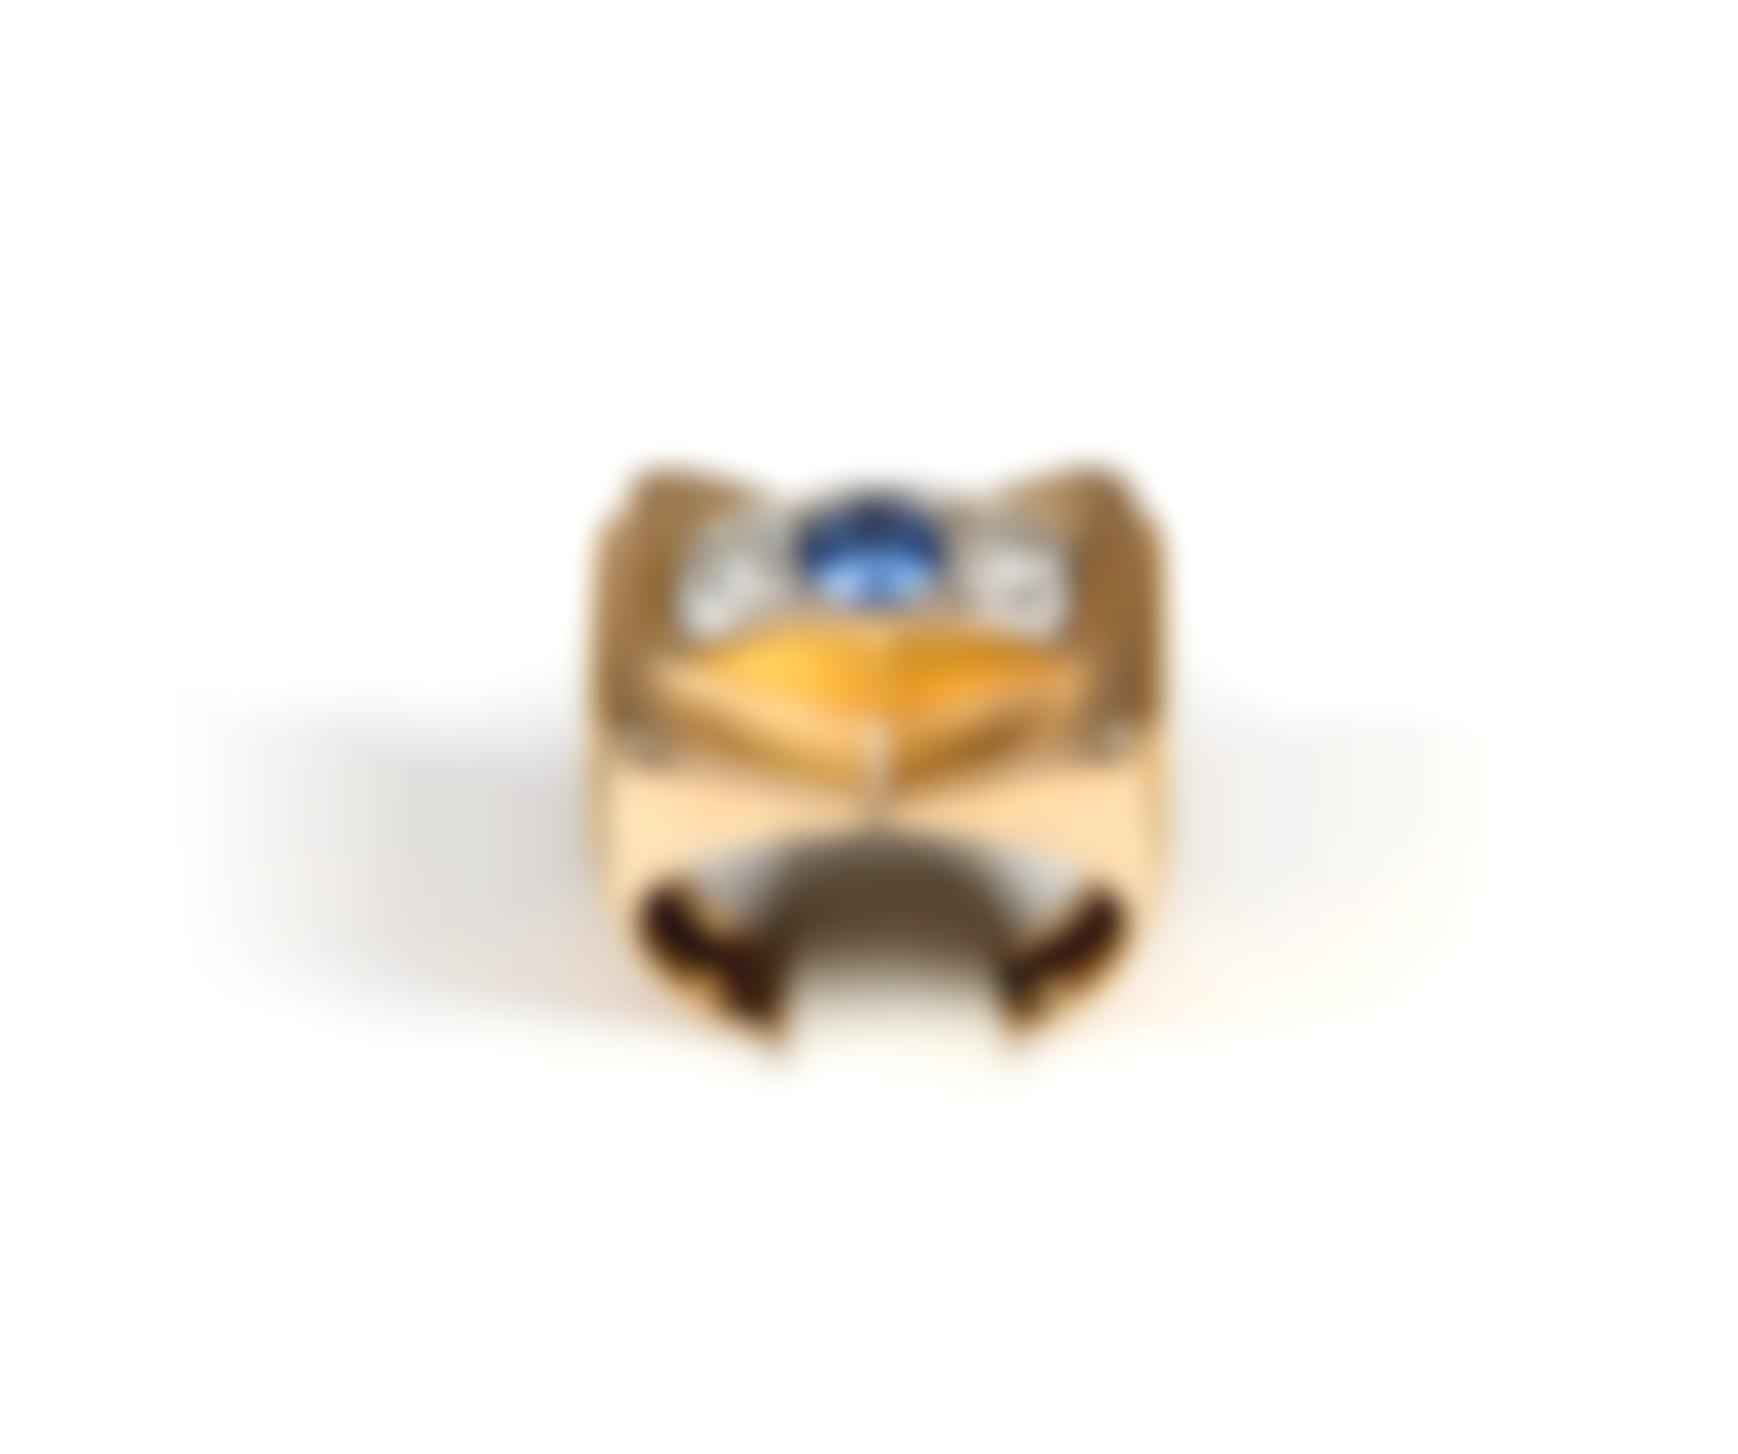 A Gold, Sapphire And Diamond Ring-